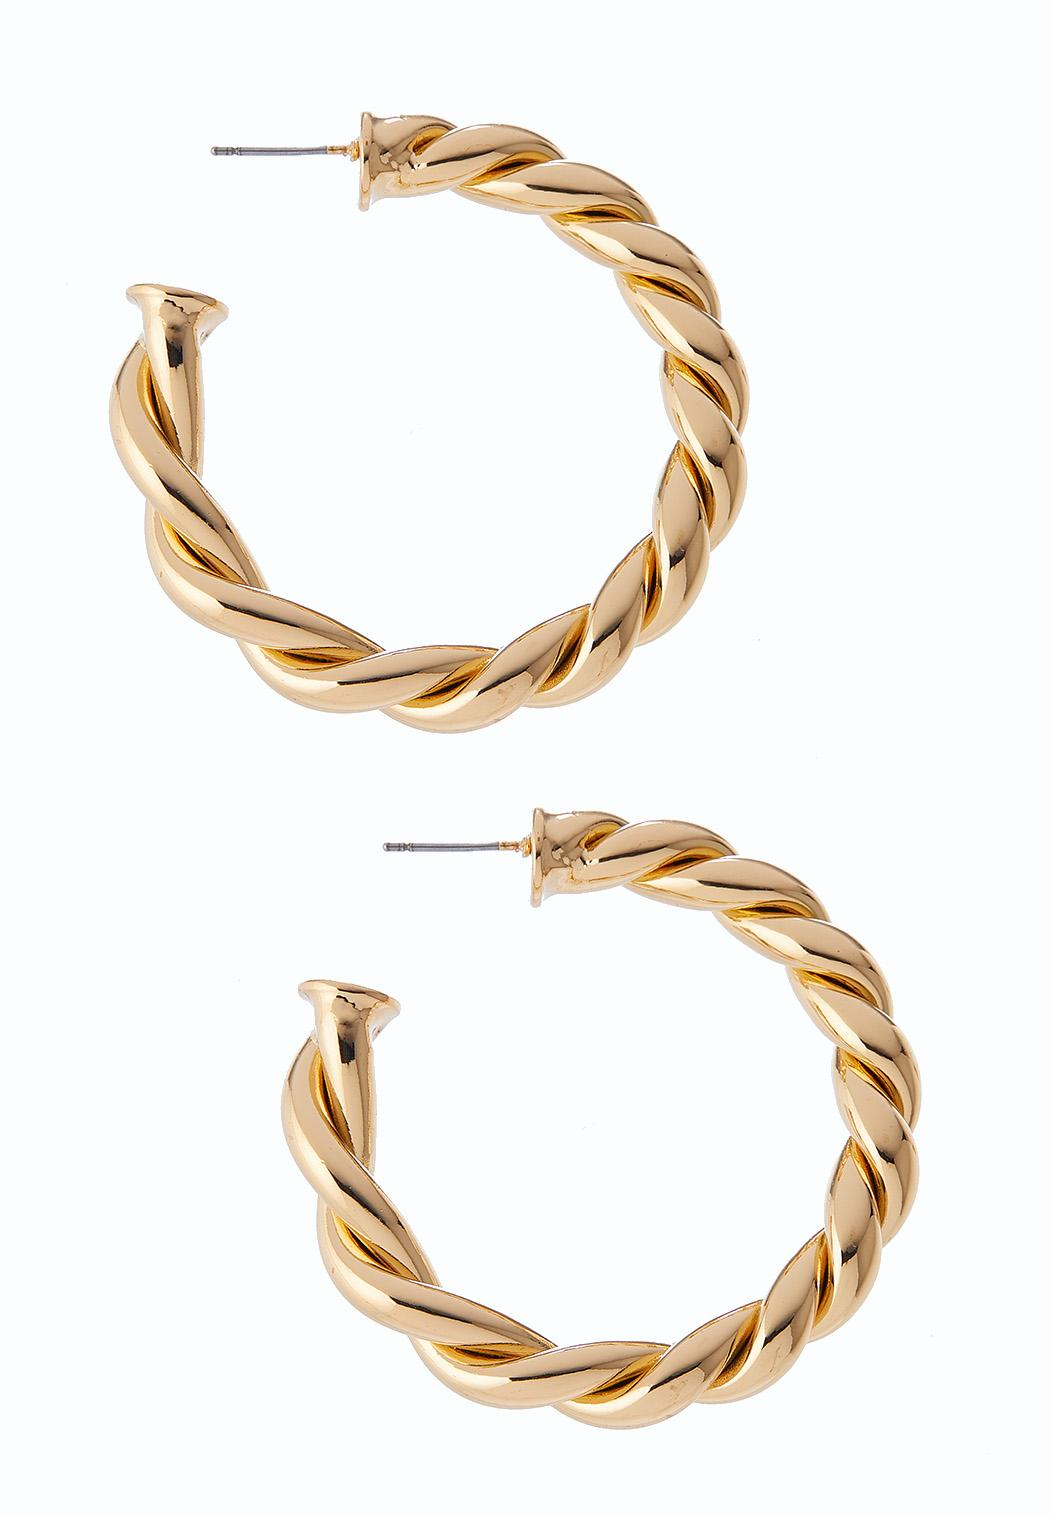 Chunky Twisted Gold Hoop Earrings Hoops Cato Fashions